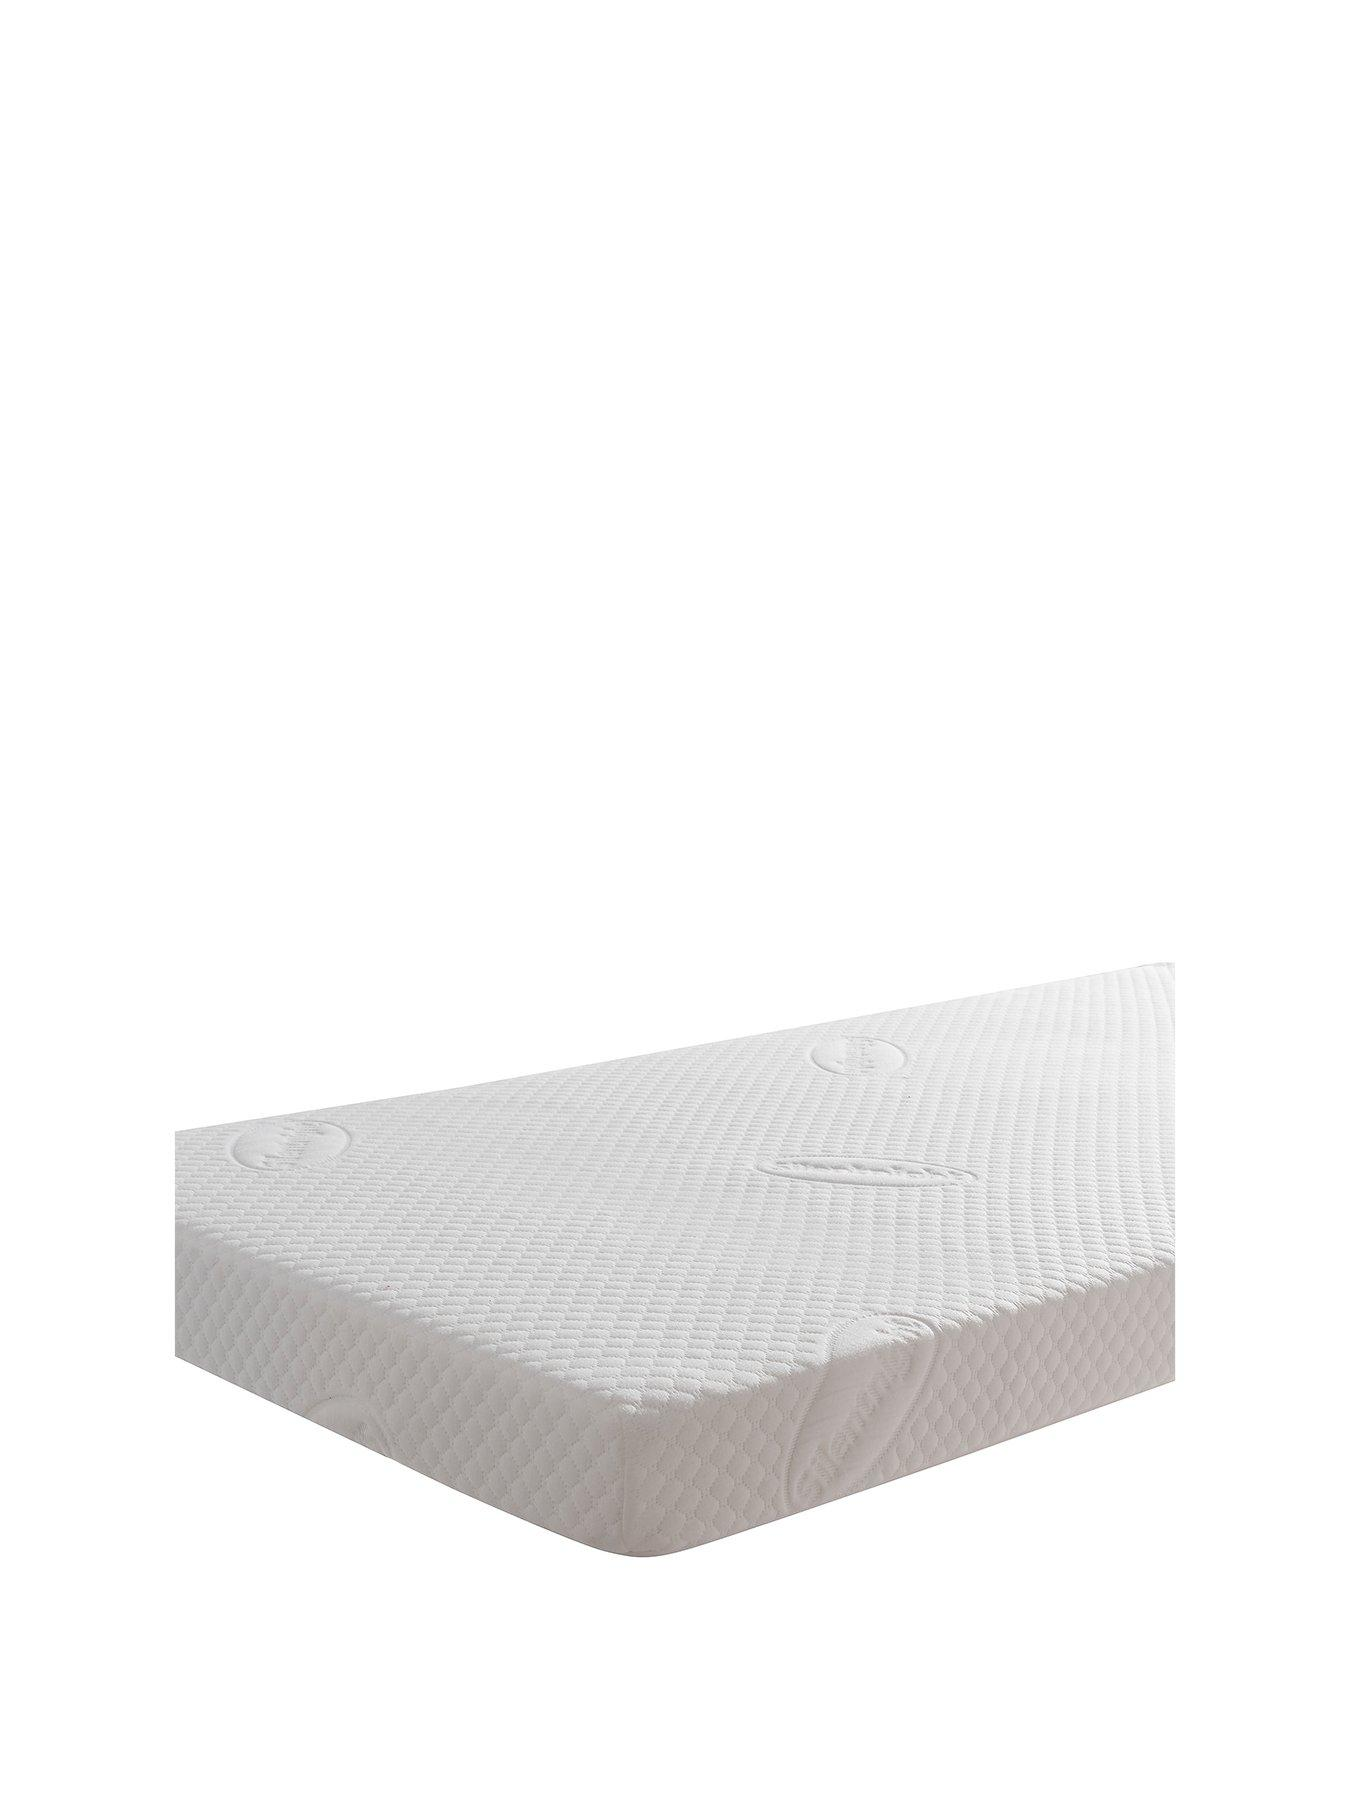 Travel Cot Mattress 93 x 64 x 6 cm For Baby Toddler Children Washable Cover